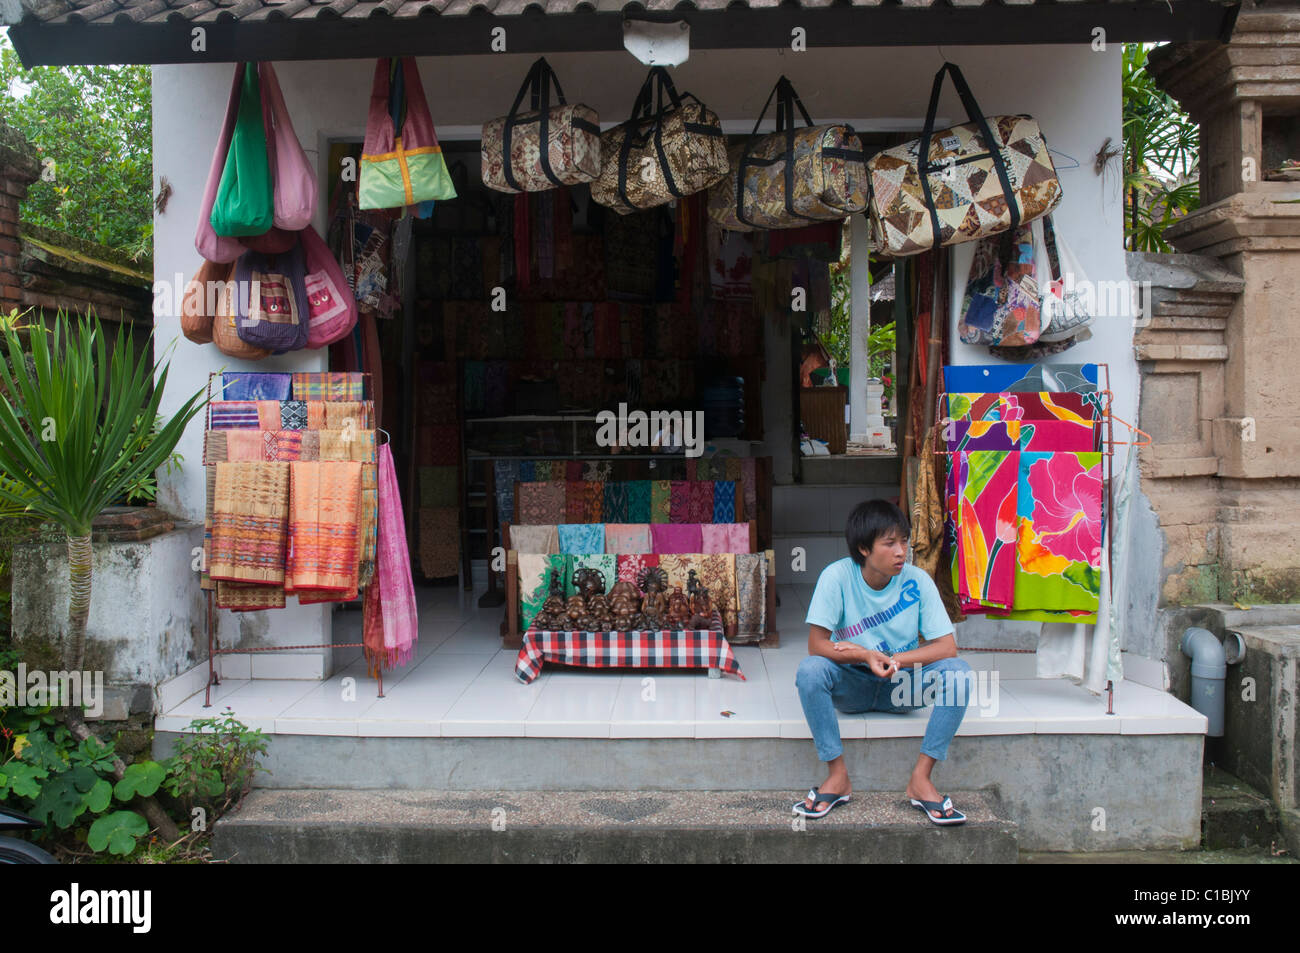 A youth sitting outside a souvenir store in Ubud, Bali Indonesia - Stock Image